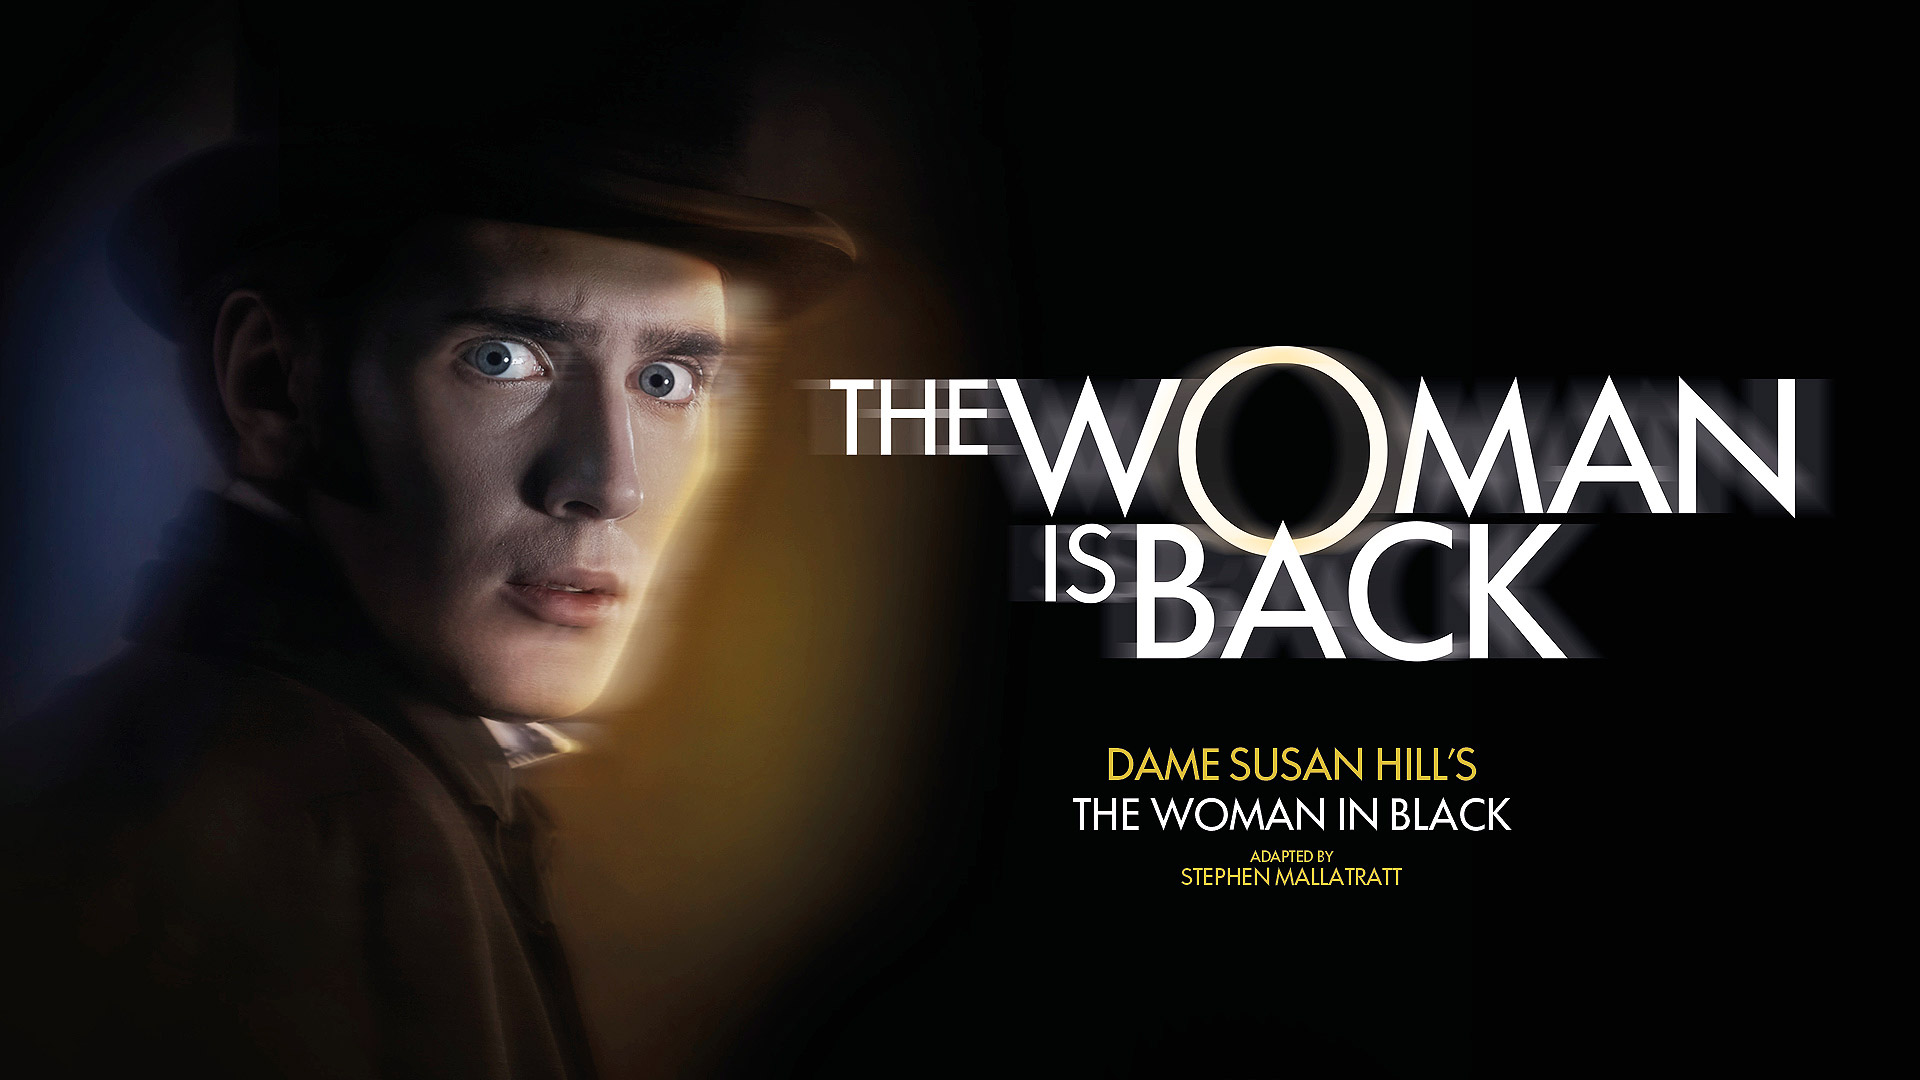 Production image for The Woman in Black celebrating 30 years